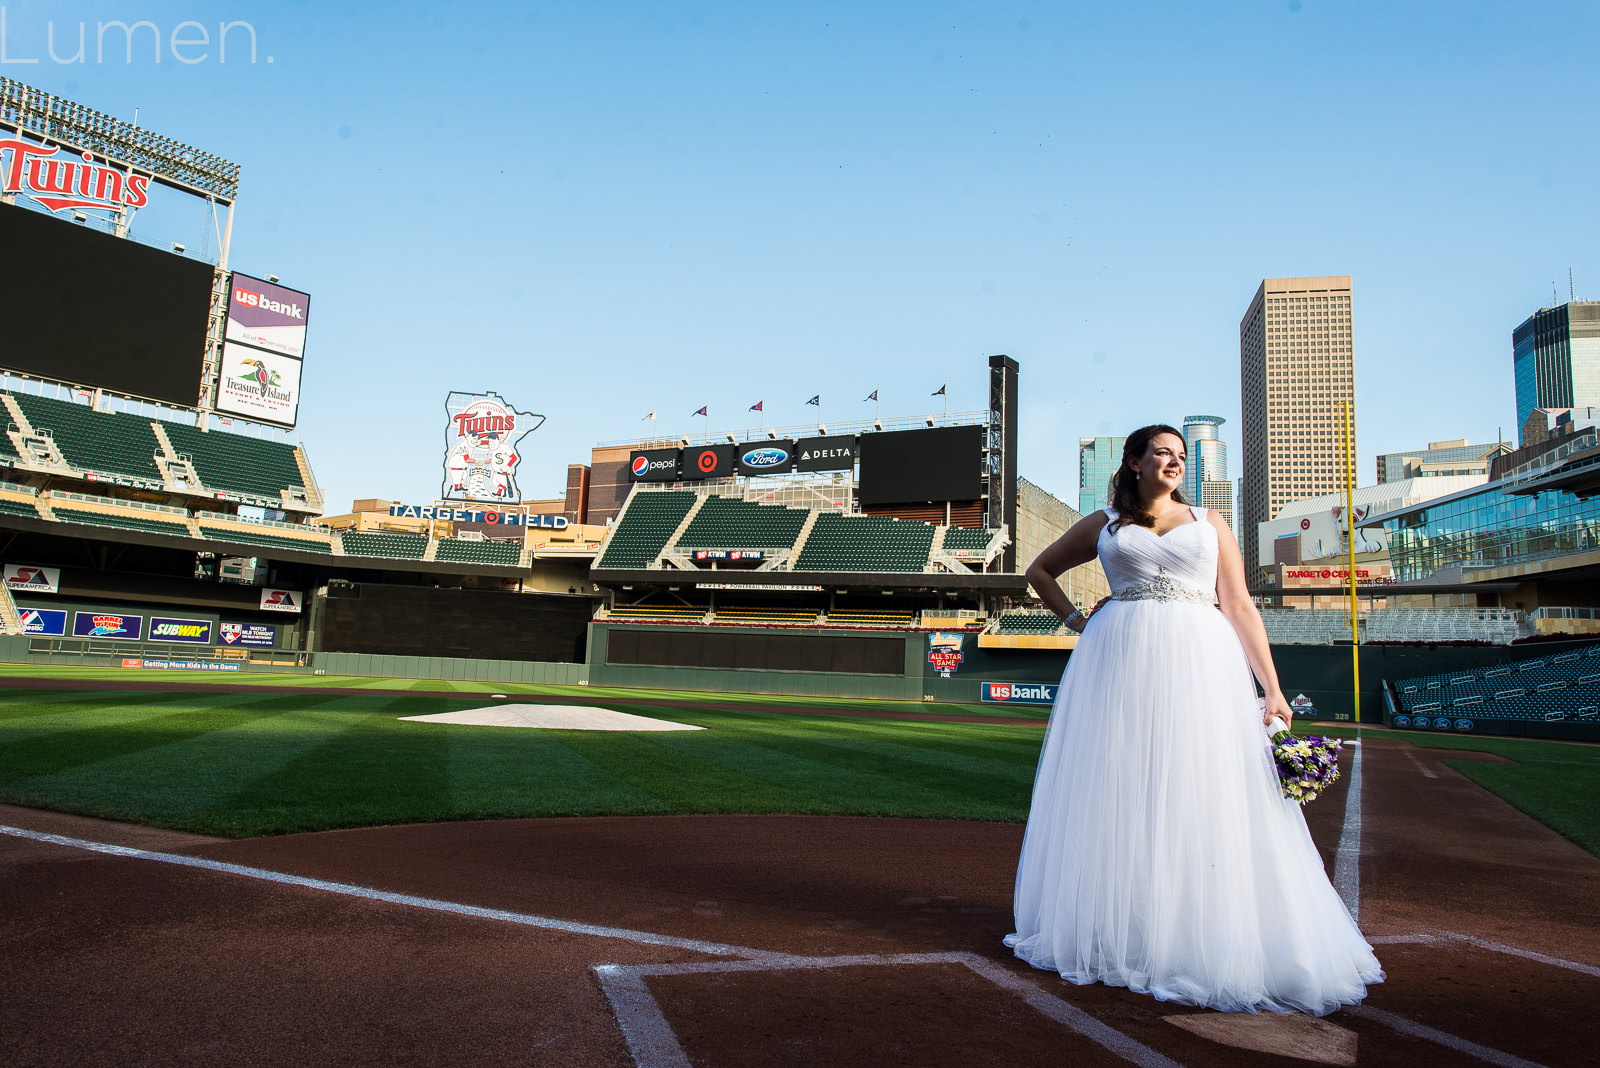 Target Field Wedding Photography Minnesota Twins Baseball Minneapoilis Lumen